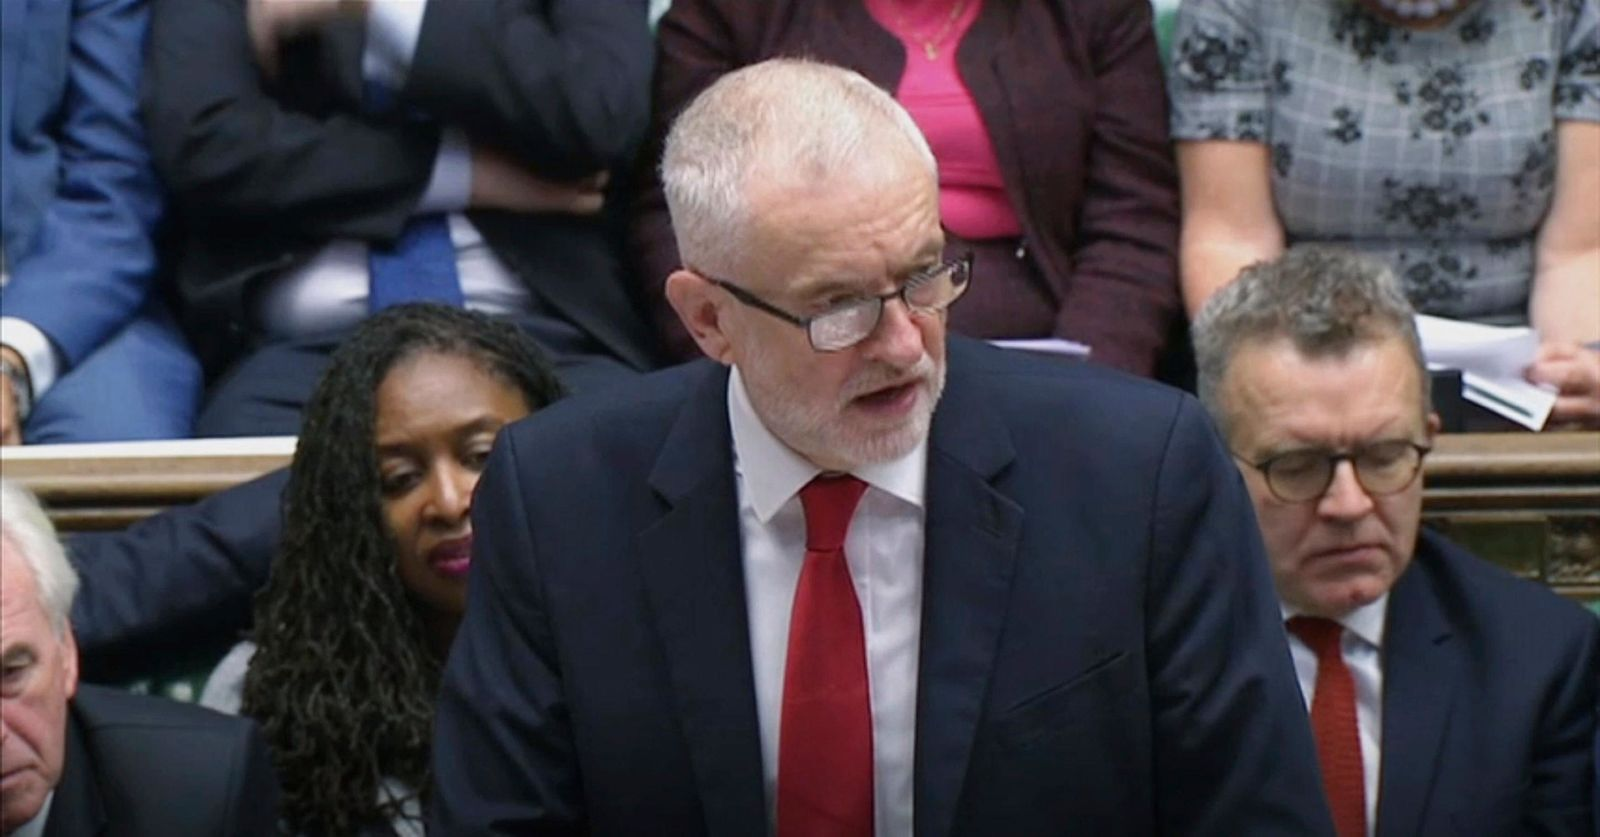 FILE- Britain's Labour Party leader Jeremy Corbyn responds to Prime Minister Boris Johnson's statement to lawmakers inside a crowded House of Commons in FILE- London, Saturday Oct. 19, 2019. (House of Commons via AP)